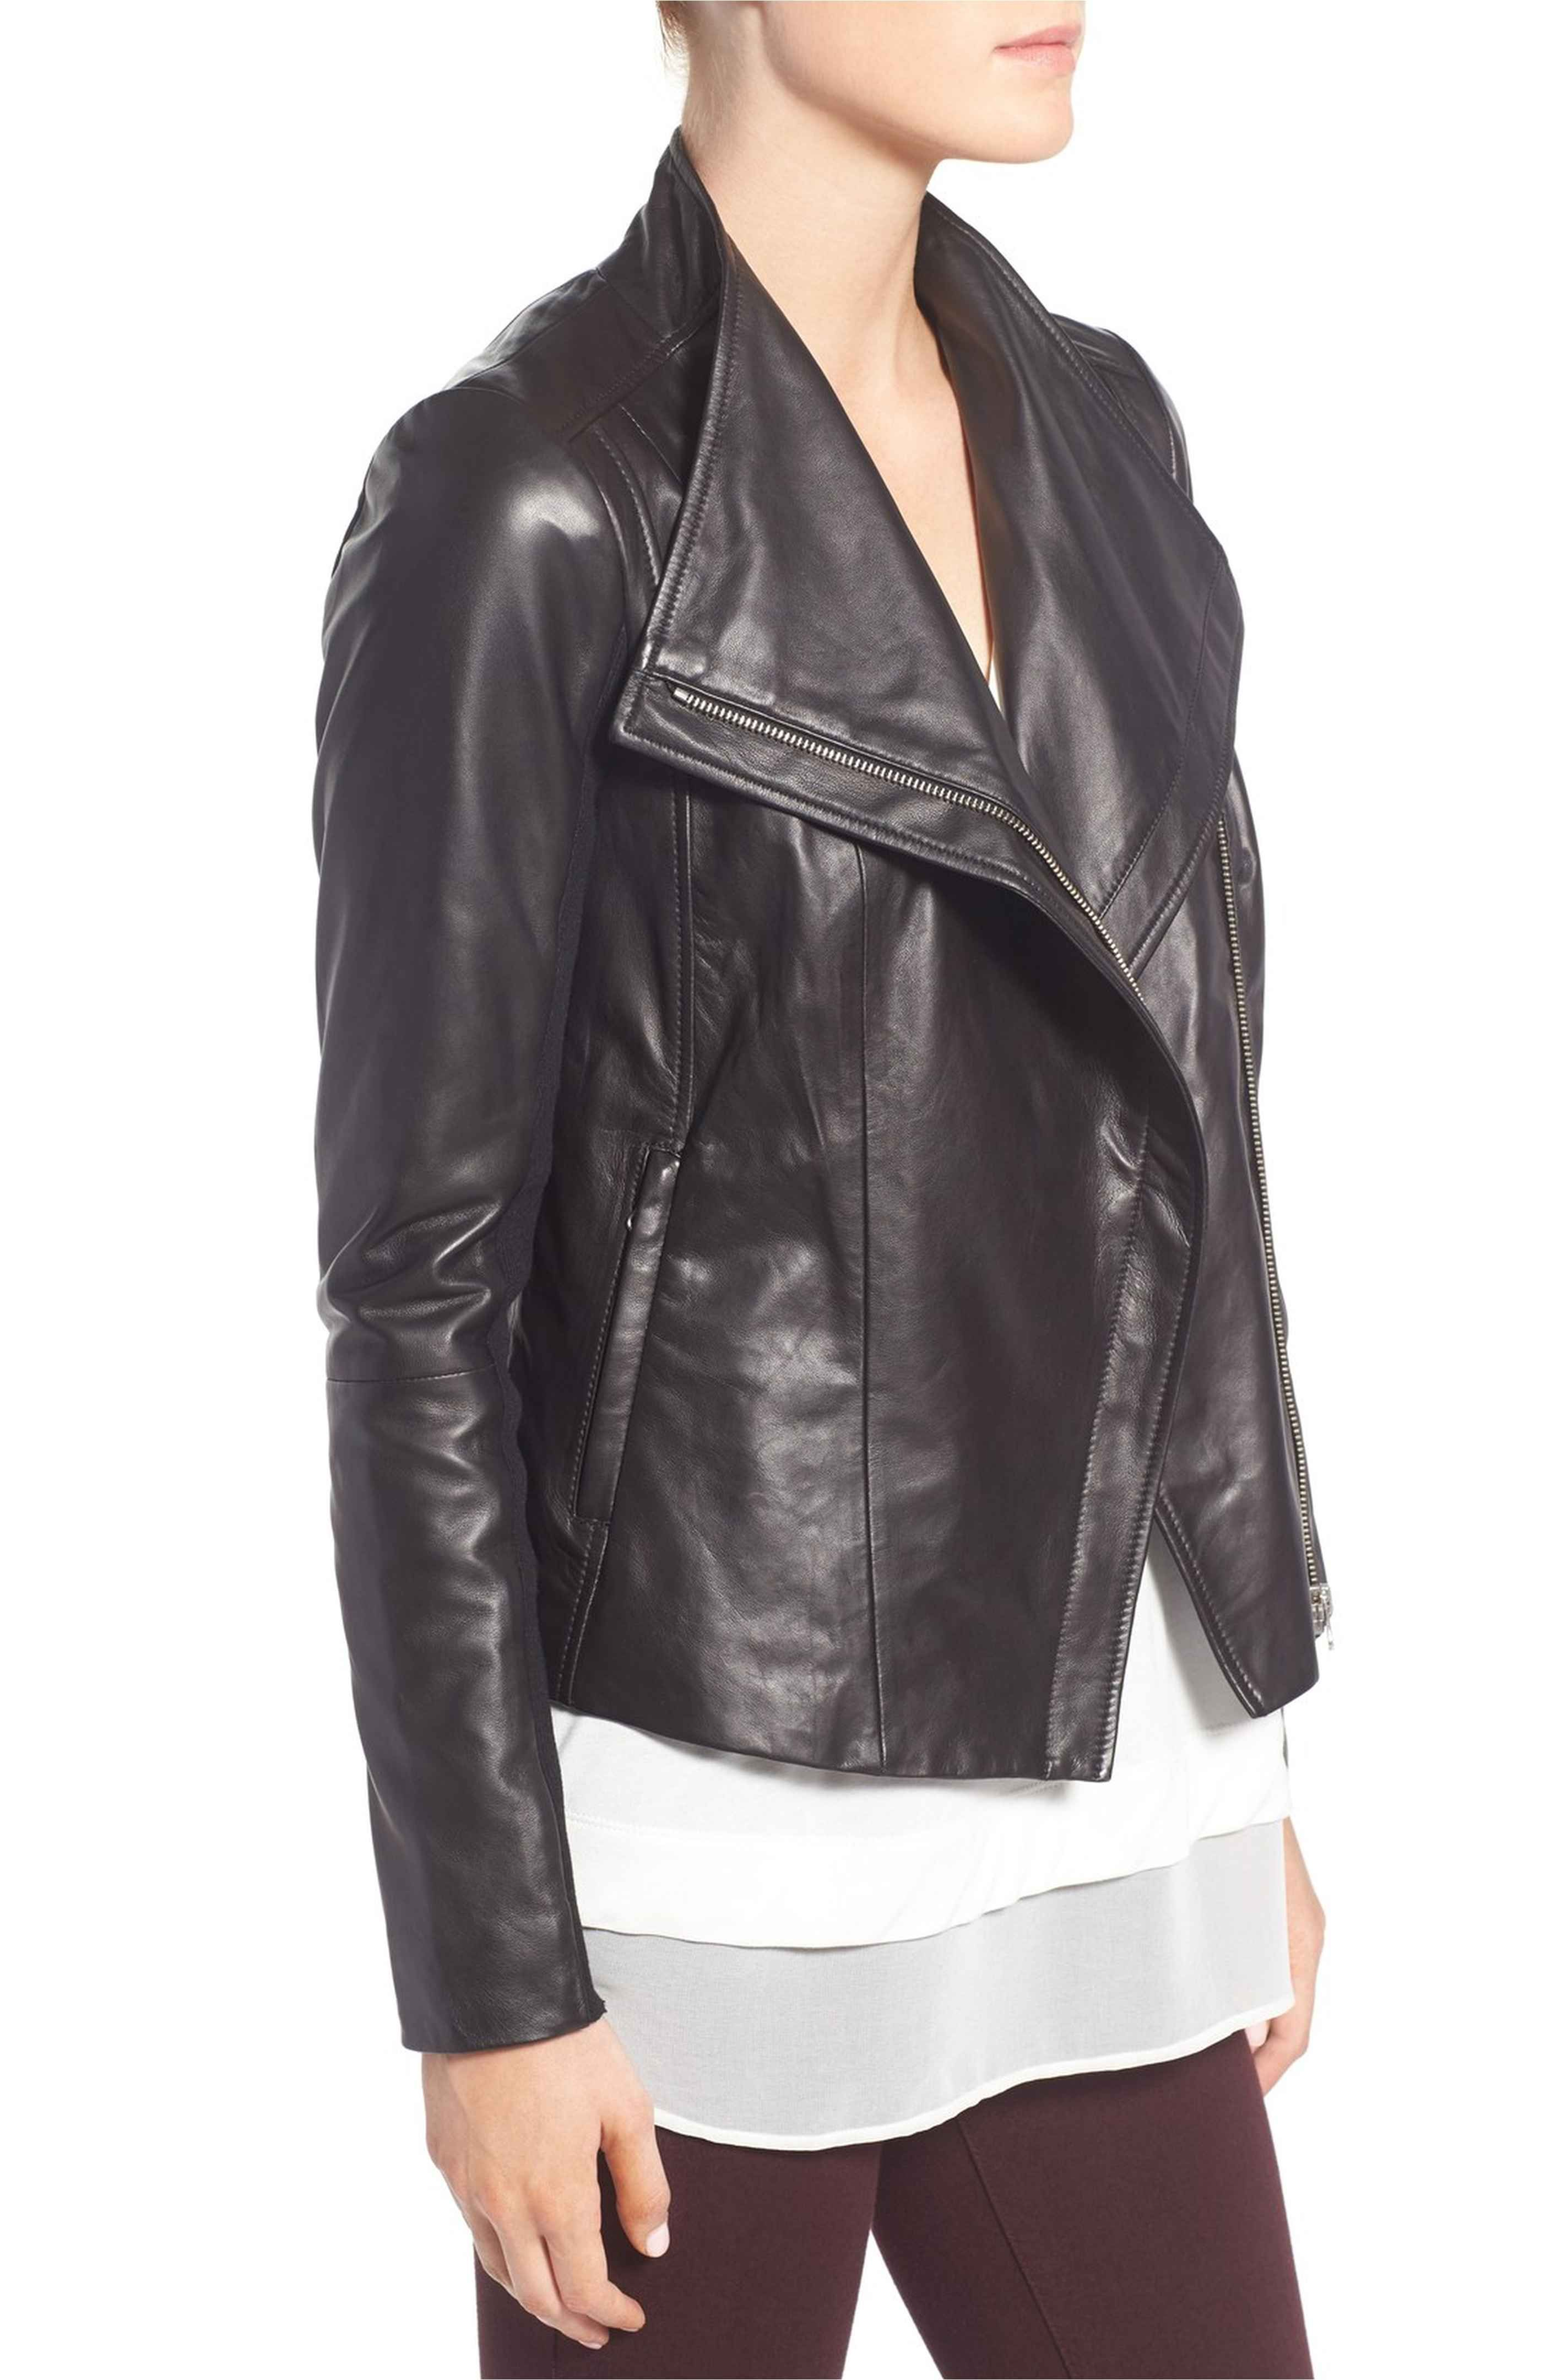 Chelsea28 Leather Moto Jacket Nordstrom Leather Moto Jacket Moto Jacket Jackets [ 4320 x 2816 Pixel ]